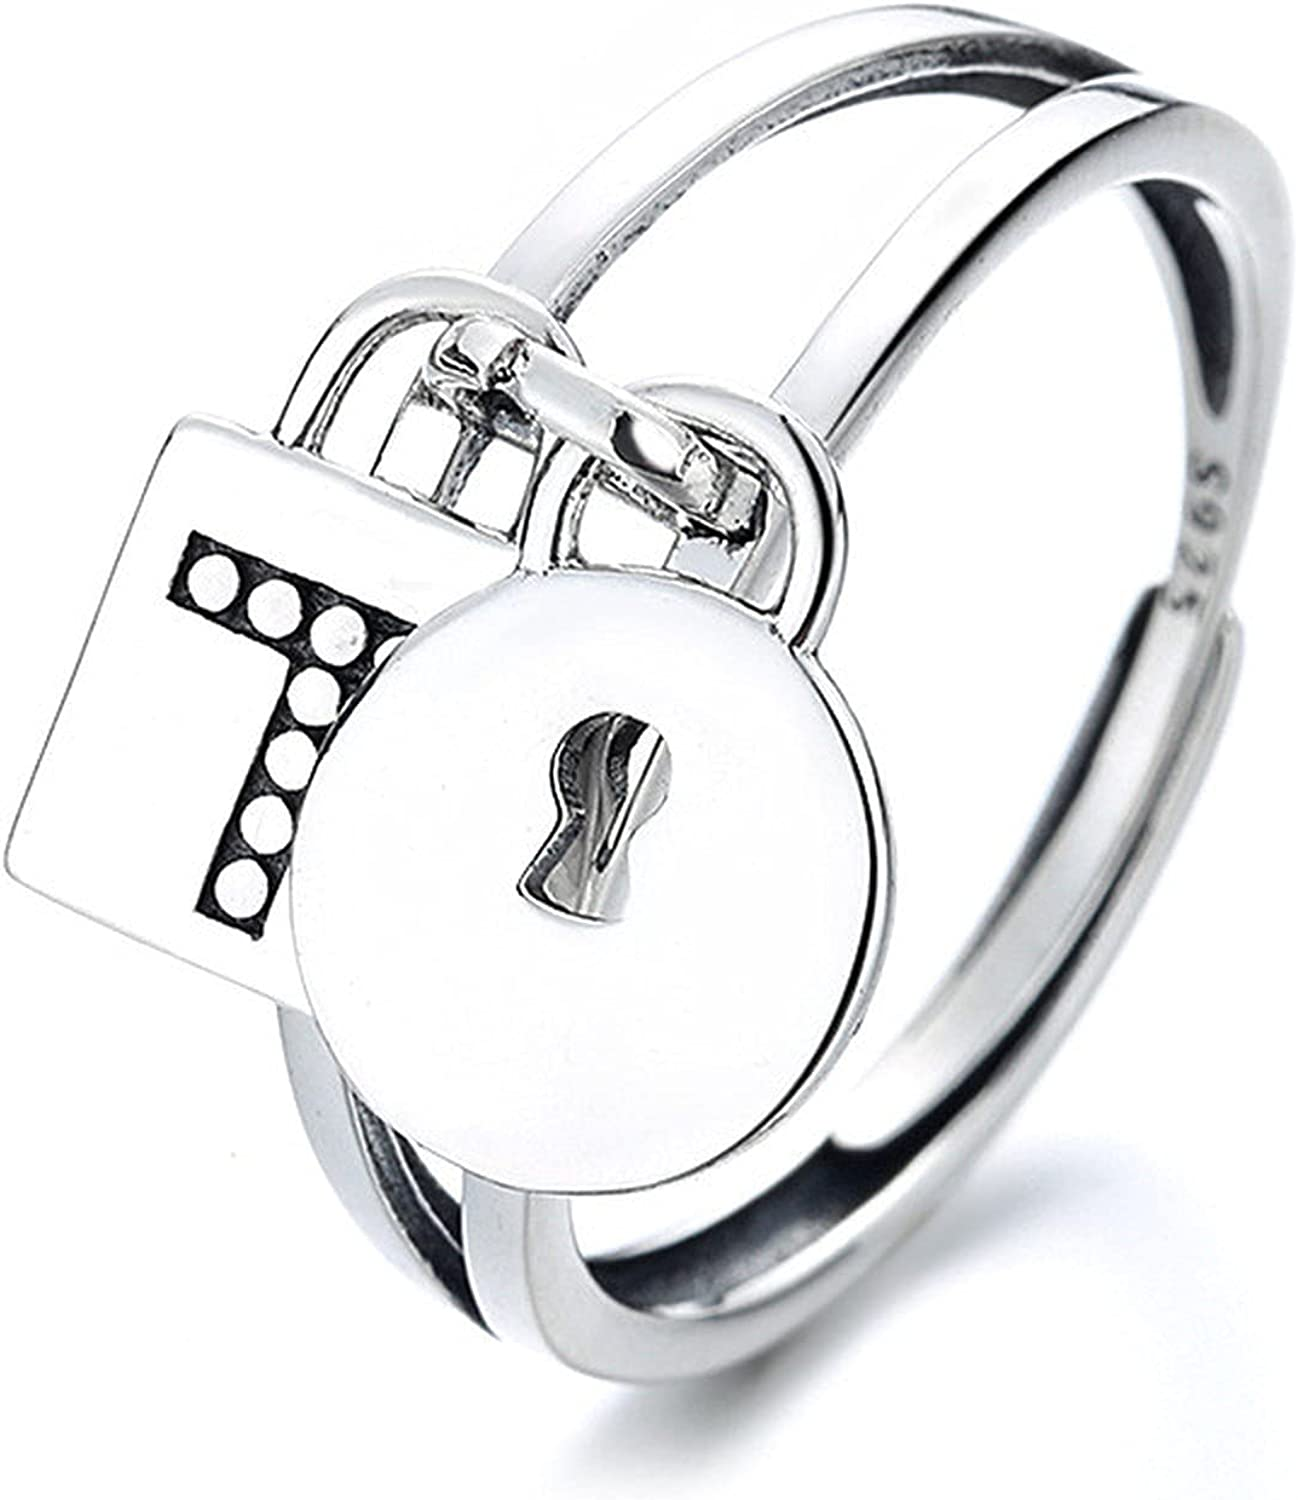 S925 sterling silver simple hollow Max 60% OFF tassel creative lock pendant latest